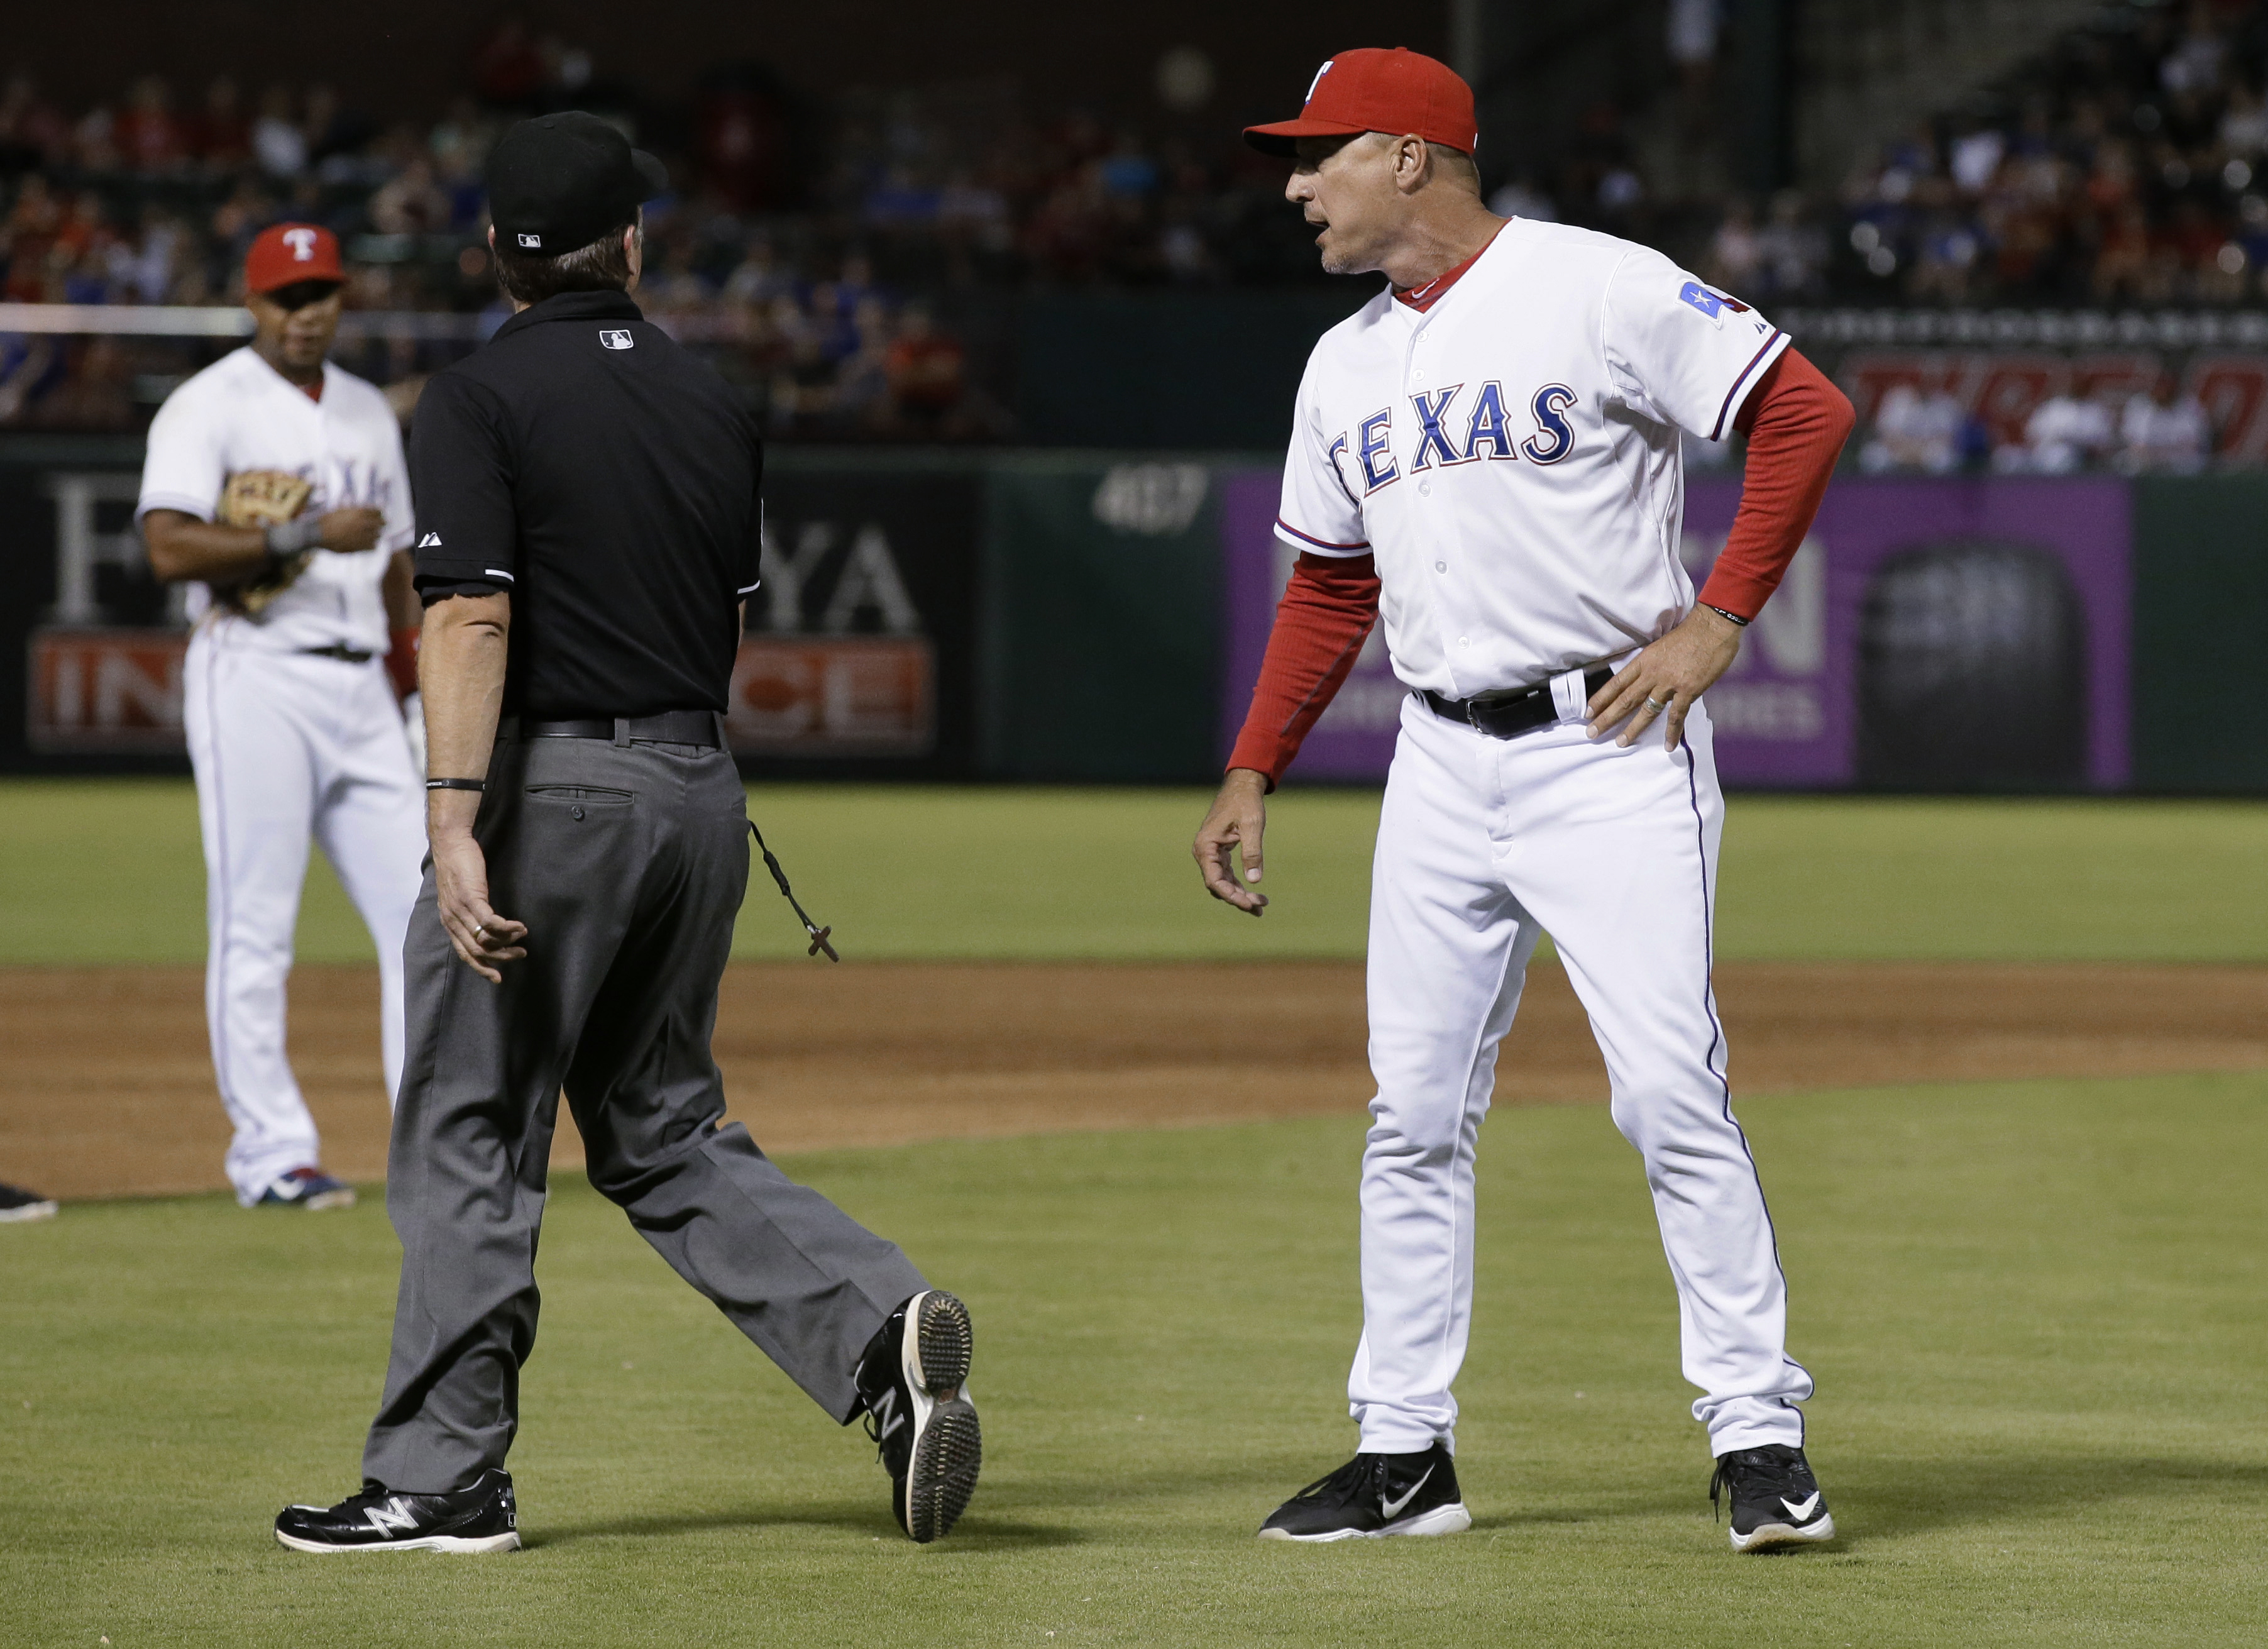 Texas Rangers manager Jeff Banister, right, yells at umpire Anthony Johnson during the second inning of a baseball game against the Seattle Mariners in Arlington, Texas, Friday, Sept. 18, 2015. (AP Photo/LM Otero)